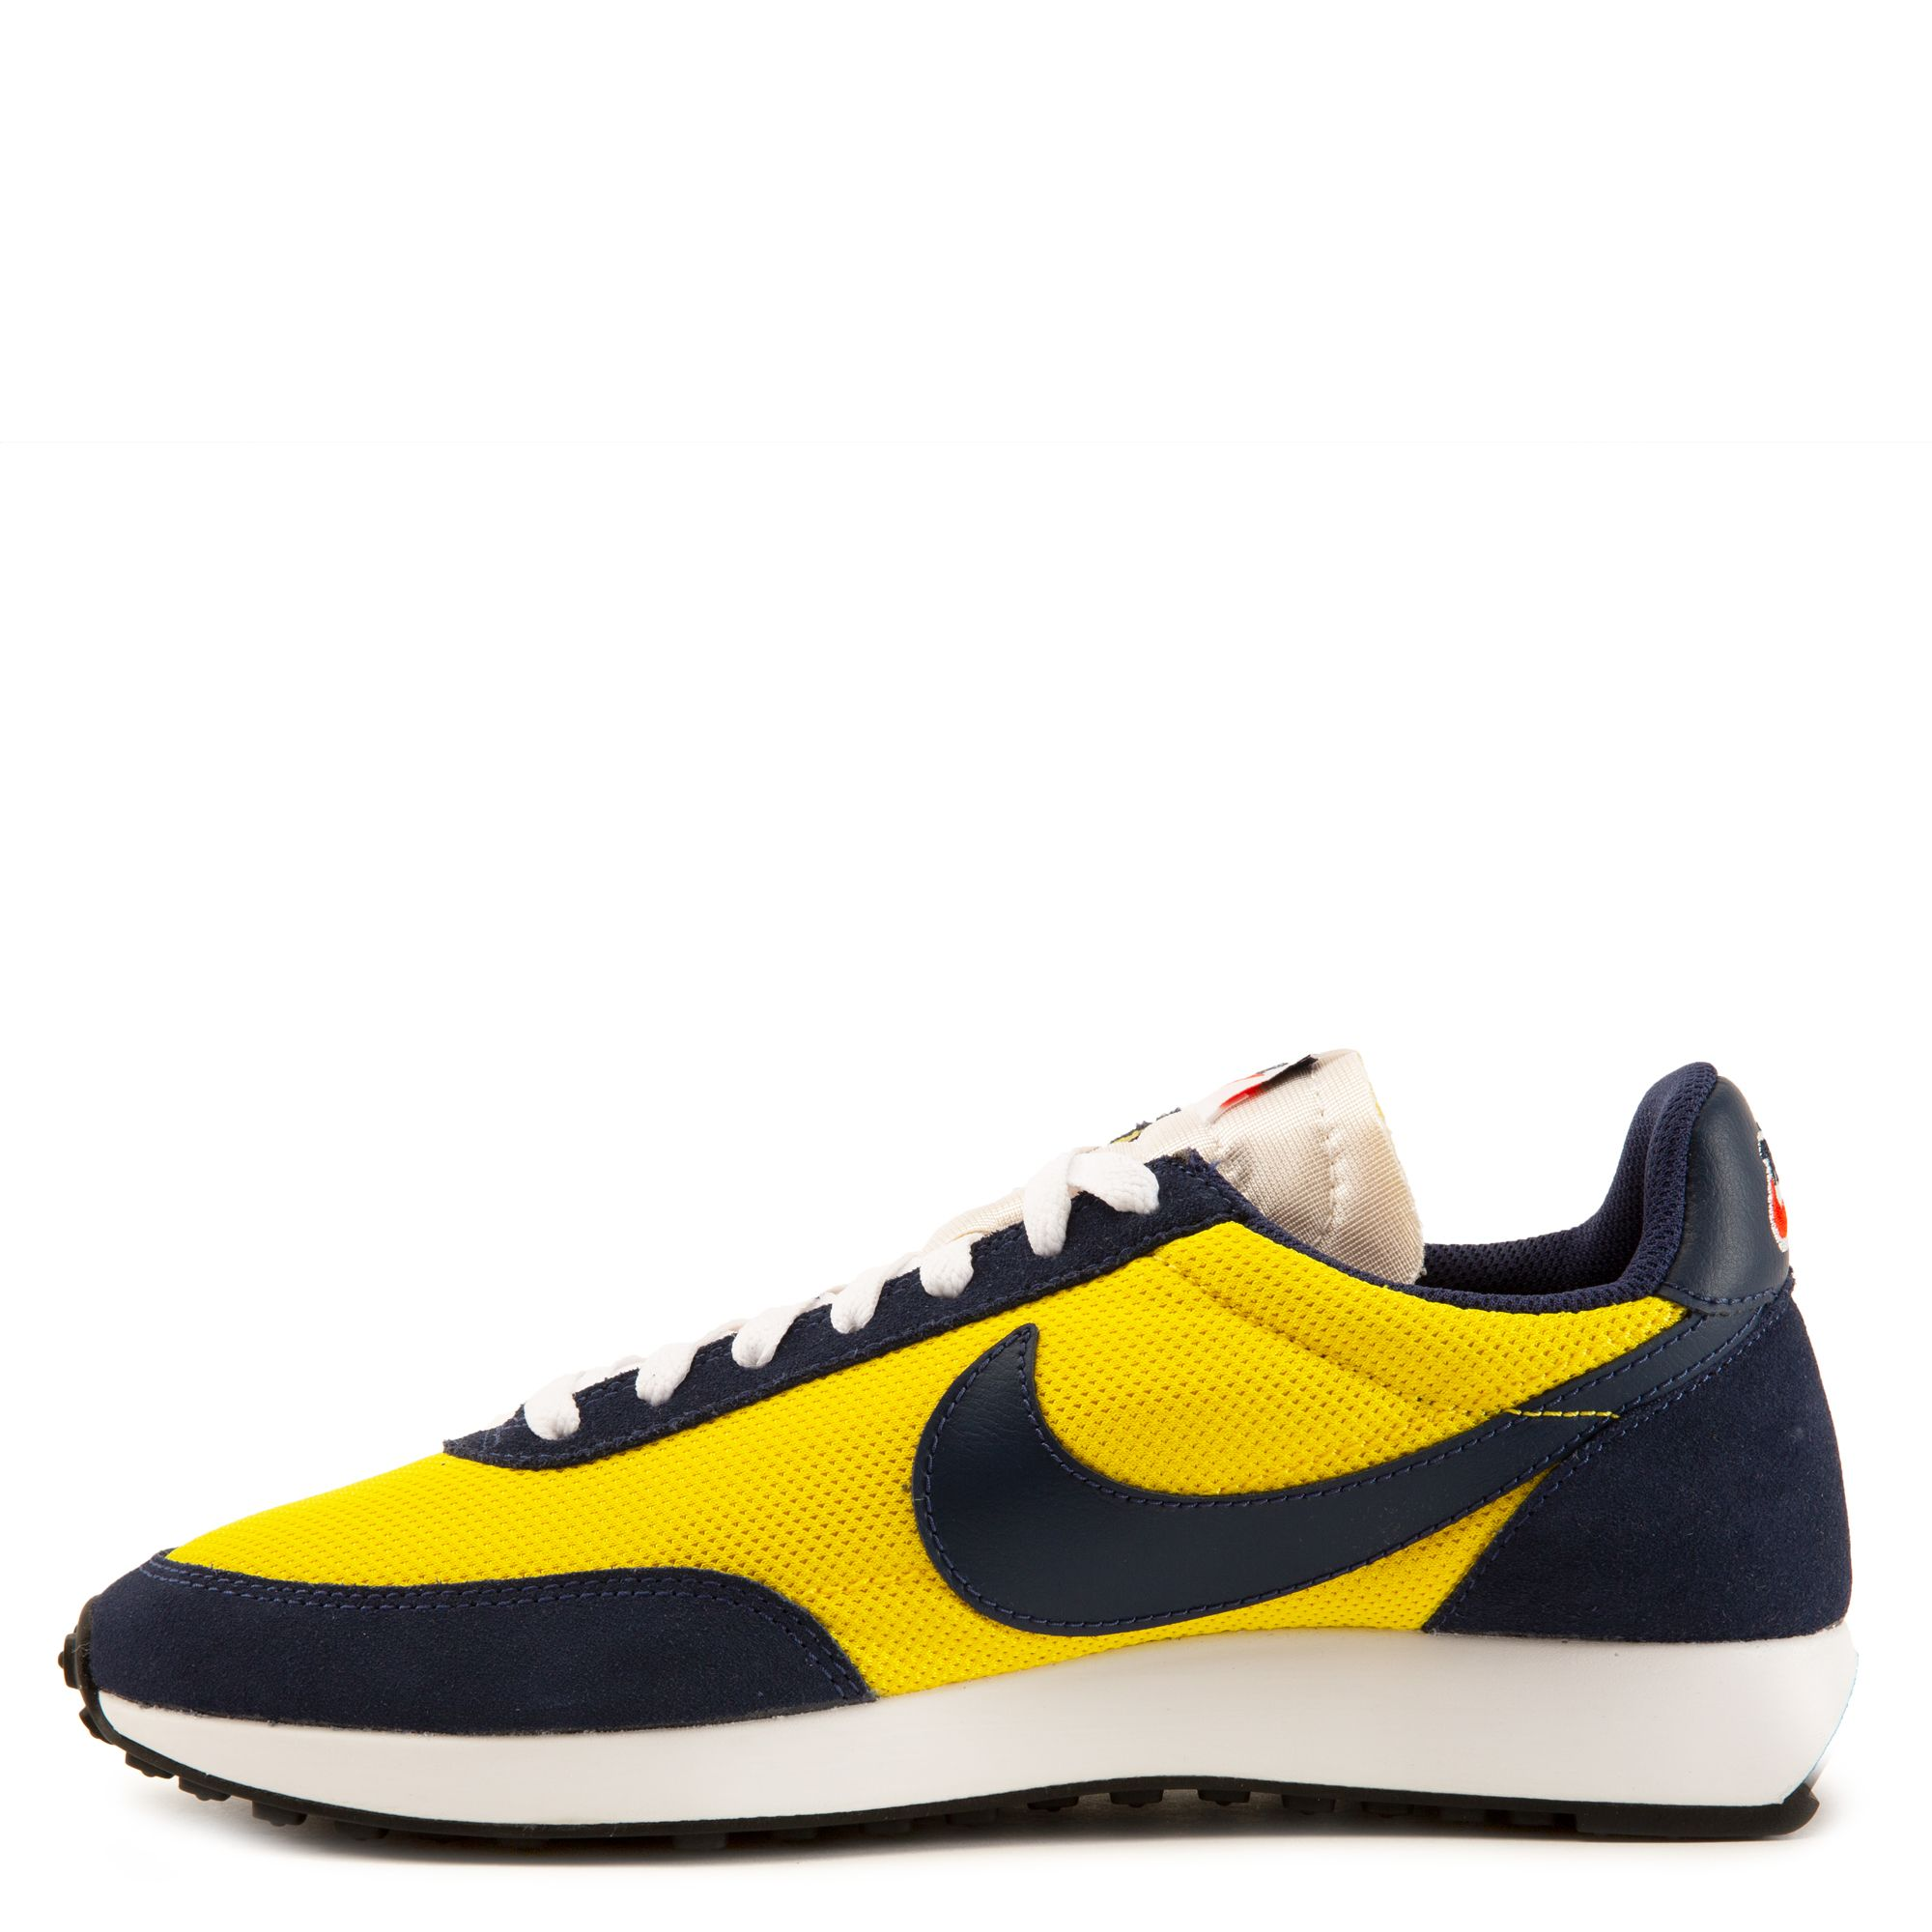 nike air tailwind 79 yellow